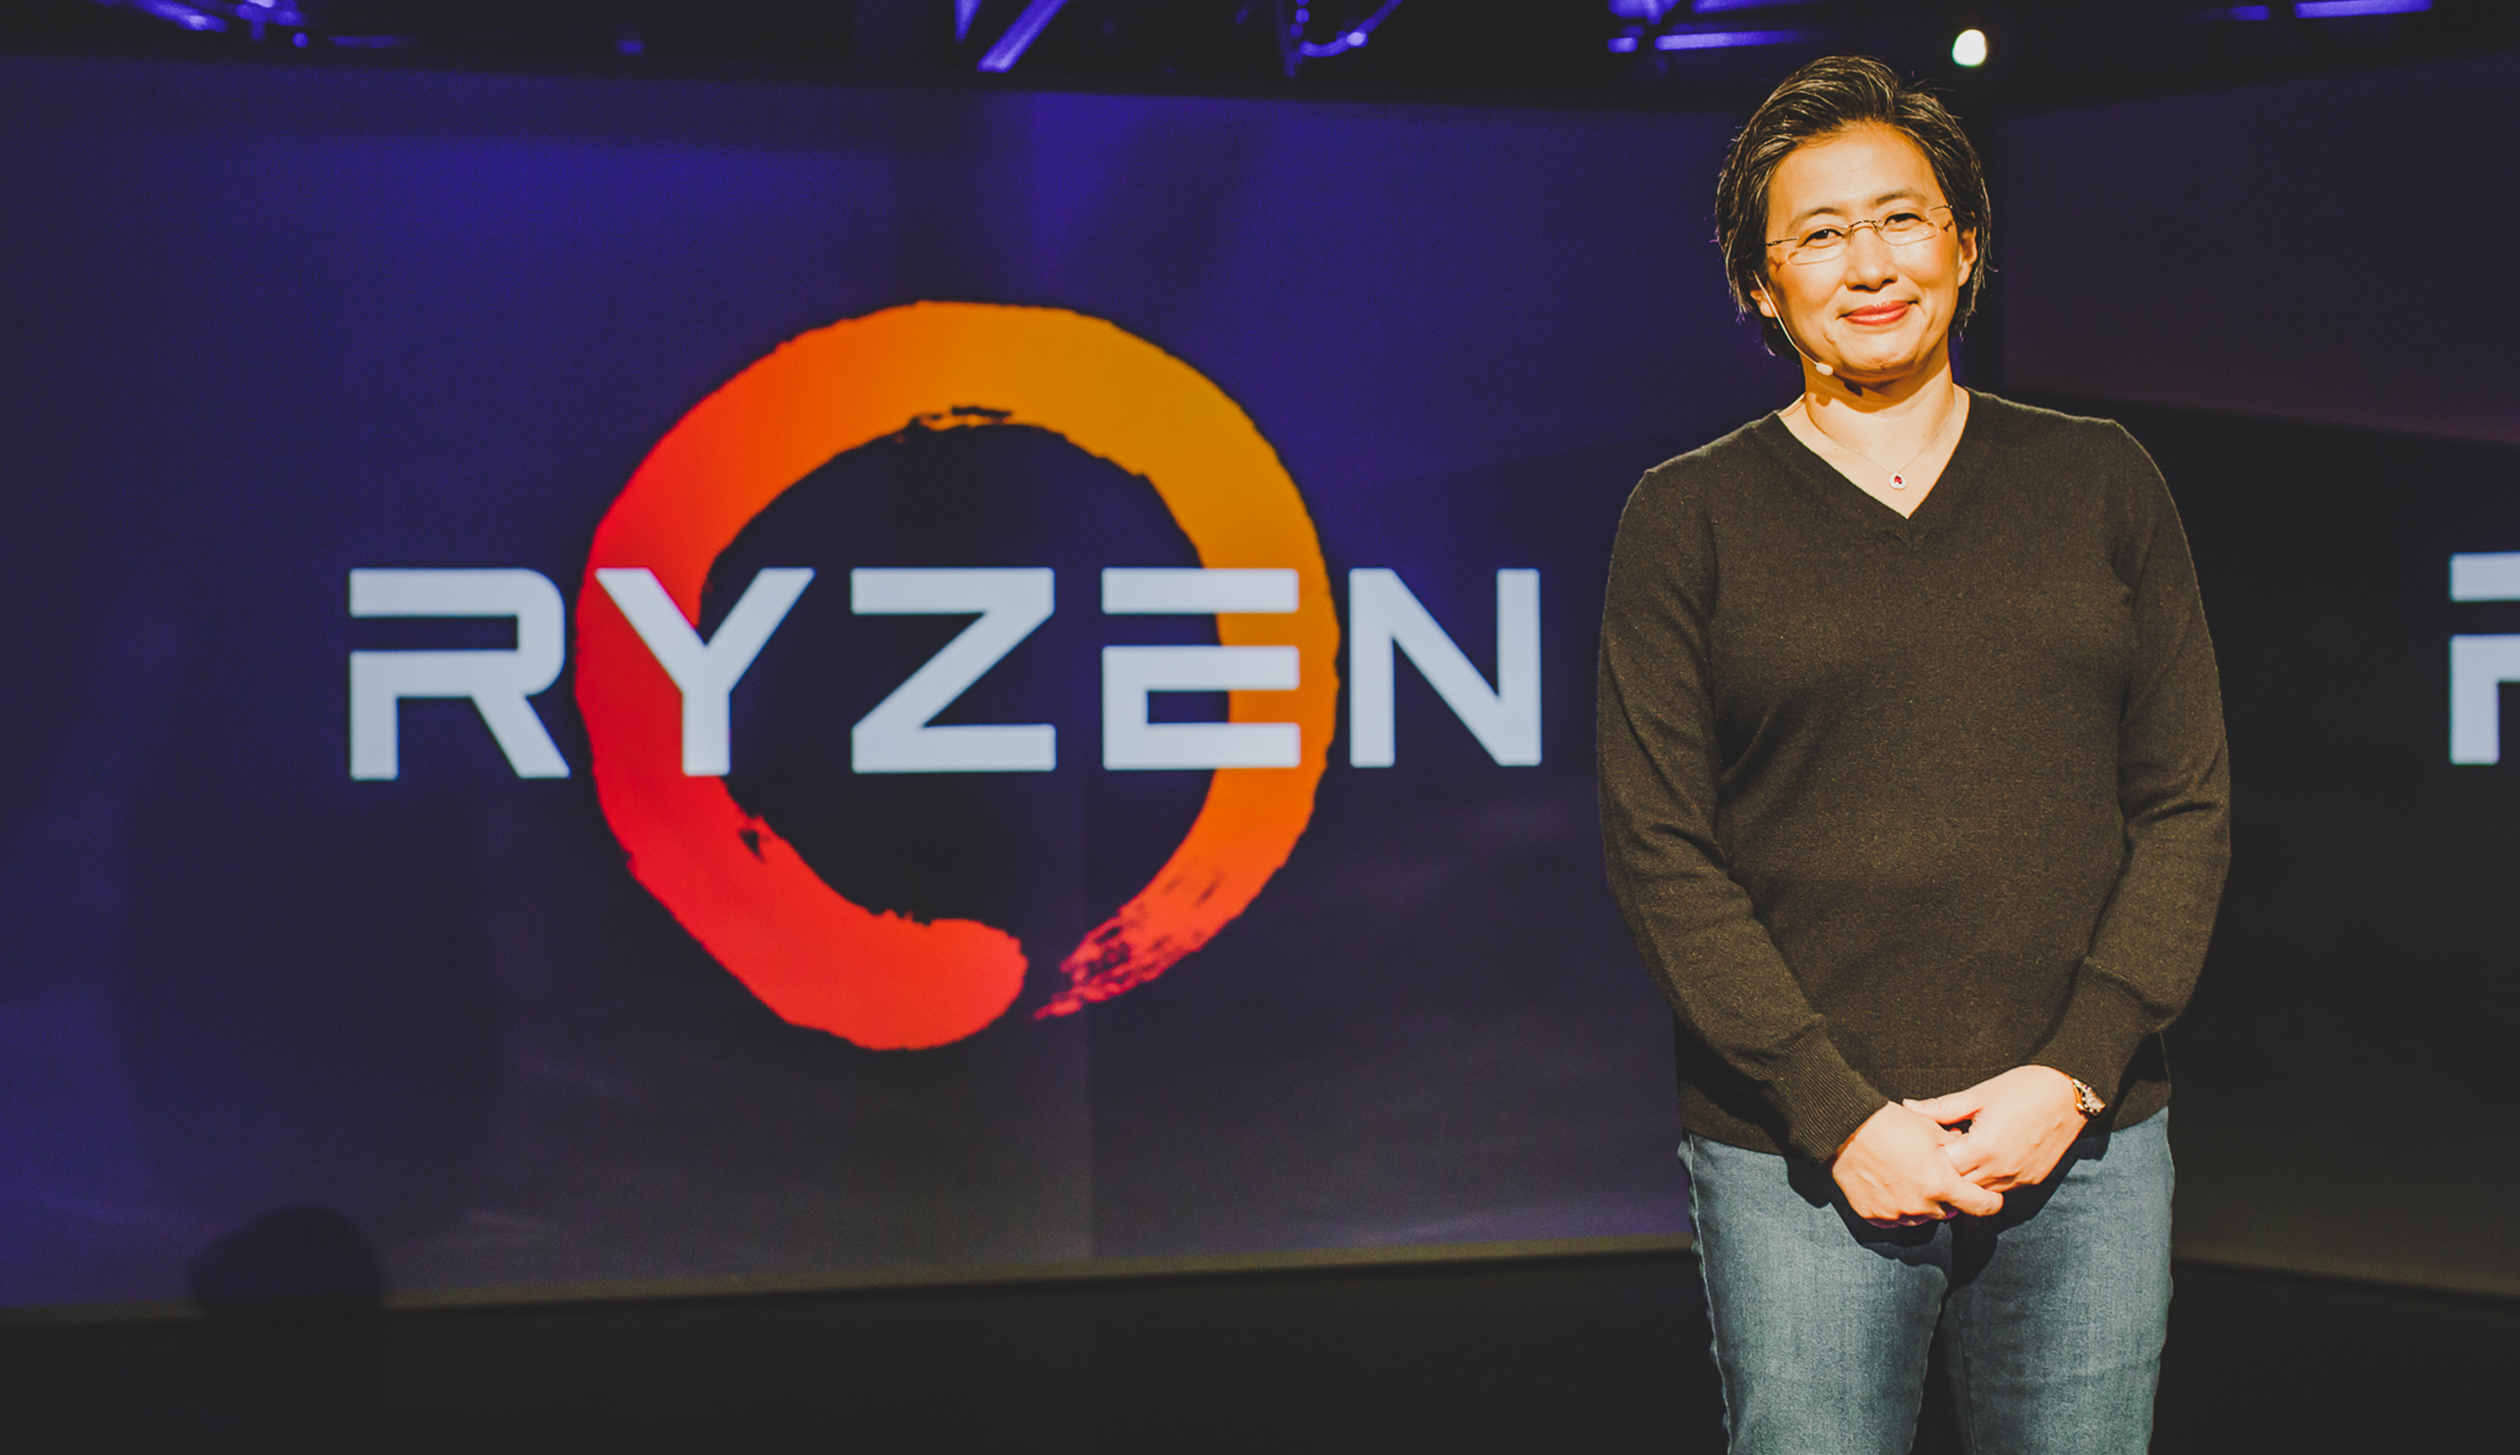 "AMD CEO Dr. Lisa Su unveils new details about upcoming Ryzen processors and delivers the first demonstration of next-generation graphics architecture ""Vega"" paired with a Ryzen processor at the company's New Horizon event on December 13, 2016."